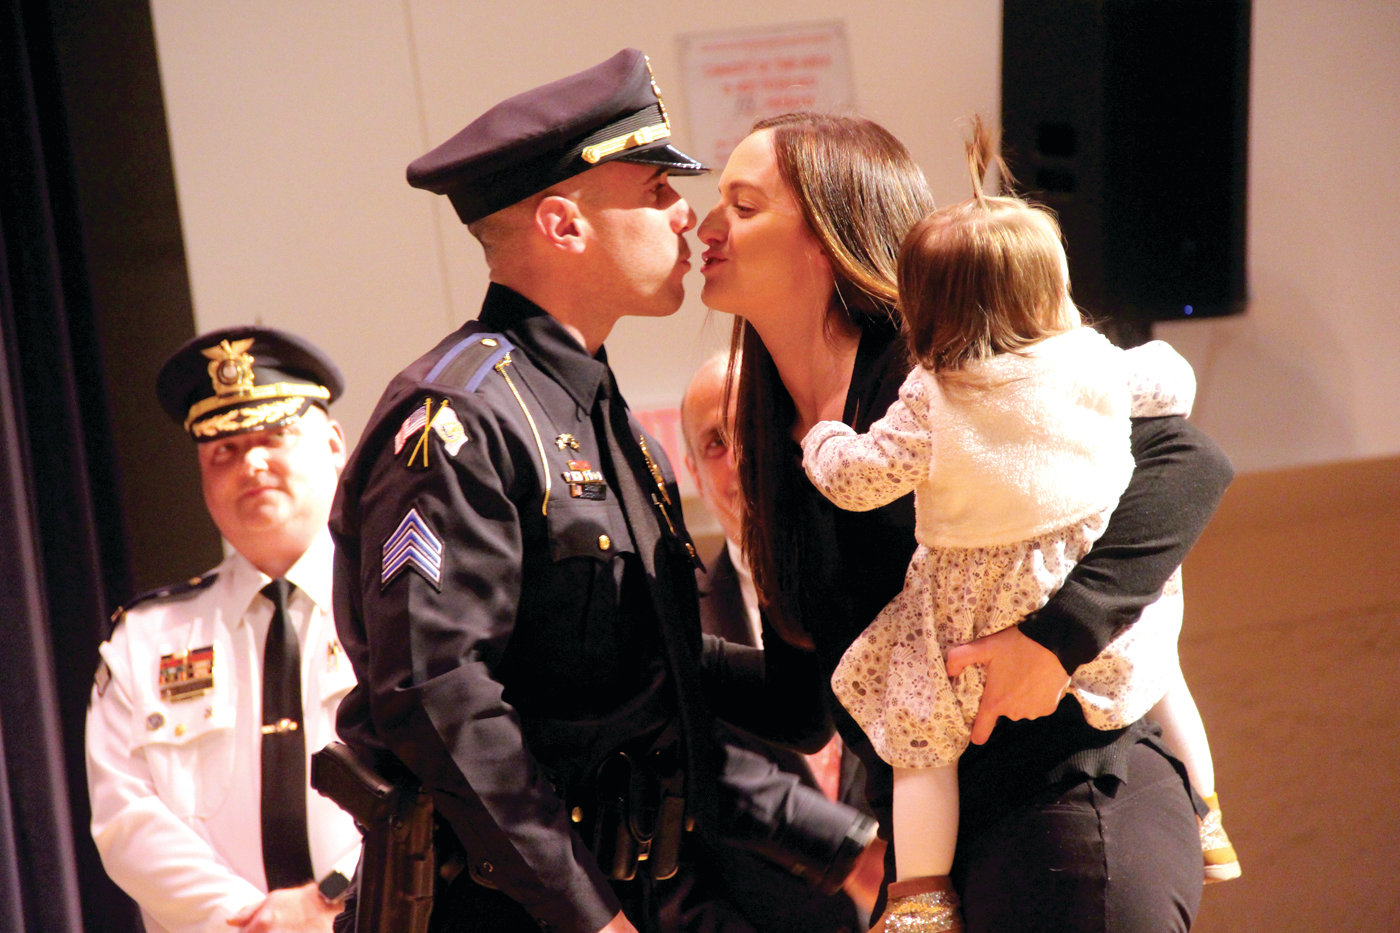 A KISS, TOO: Sgt. Christopher Lo gets a kiss from his wife, Diana, after she pinned on his badge. She is joined by their daughter, Brynley.